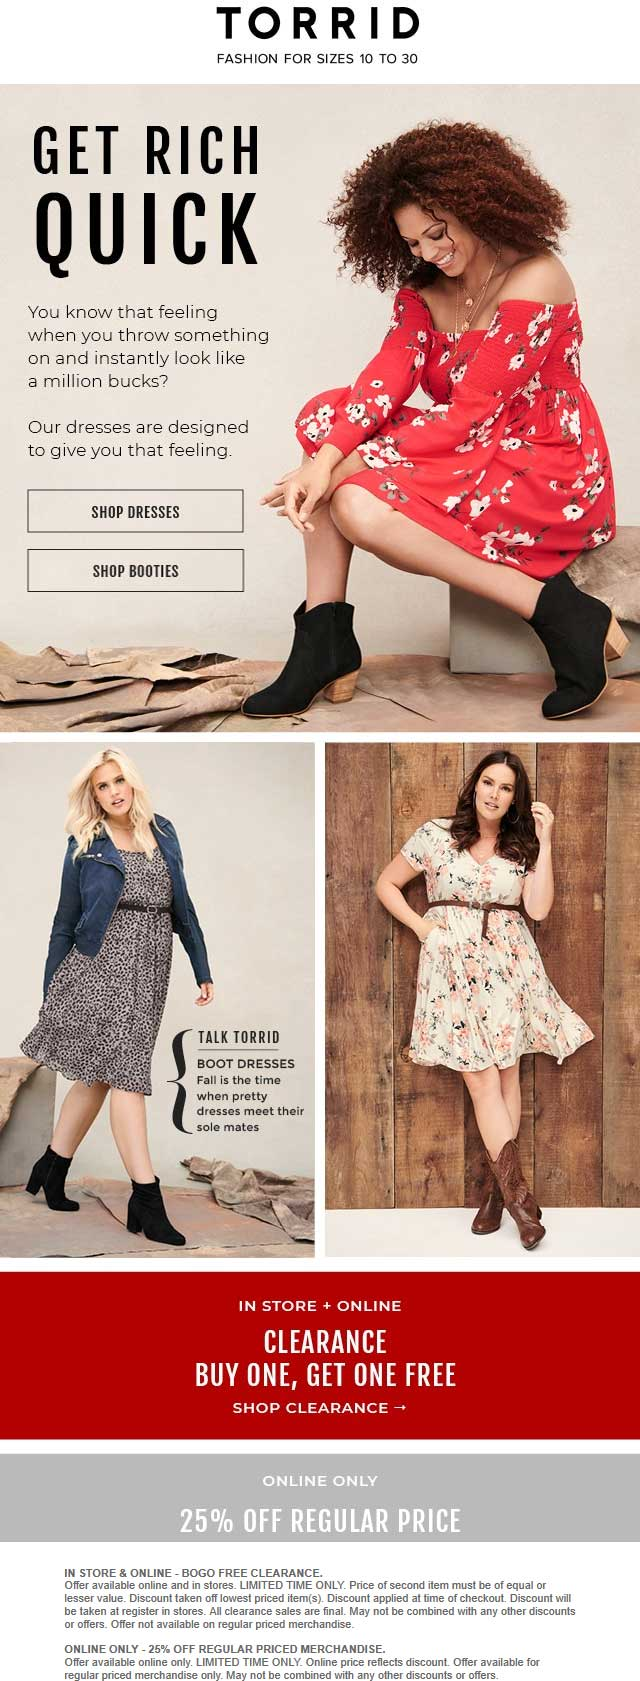 Torrid Coupon November 2019 Second clearance item free & more at Torrid, ditto online